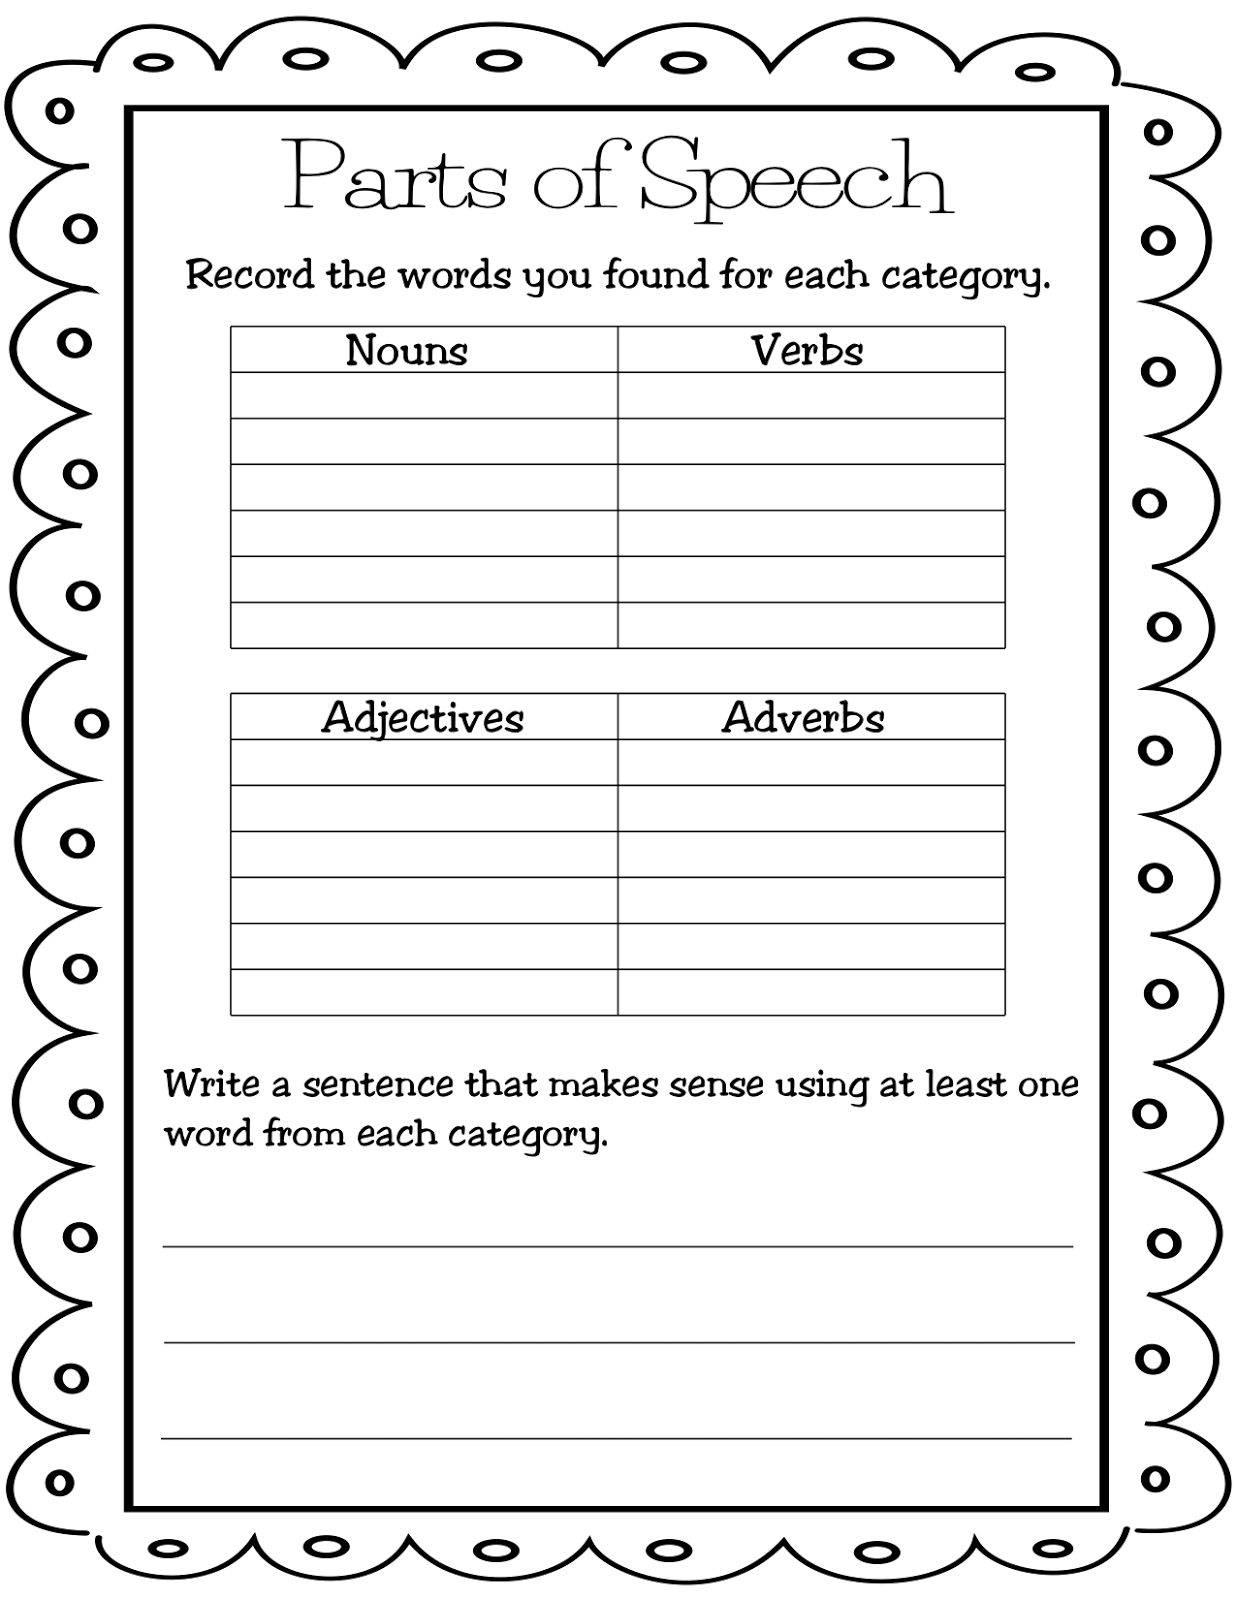 Worksheets Noun Verb Adjective Adverb Worksheet teaching mrs t parts of speech lessons thursday january 24 2013